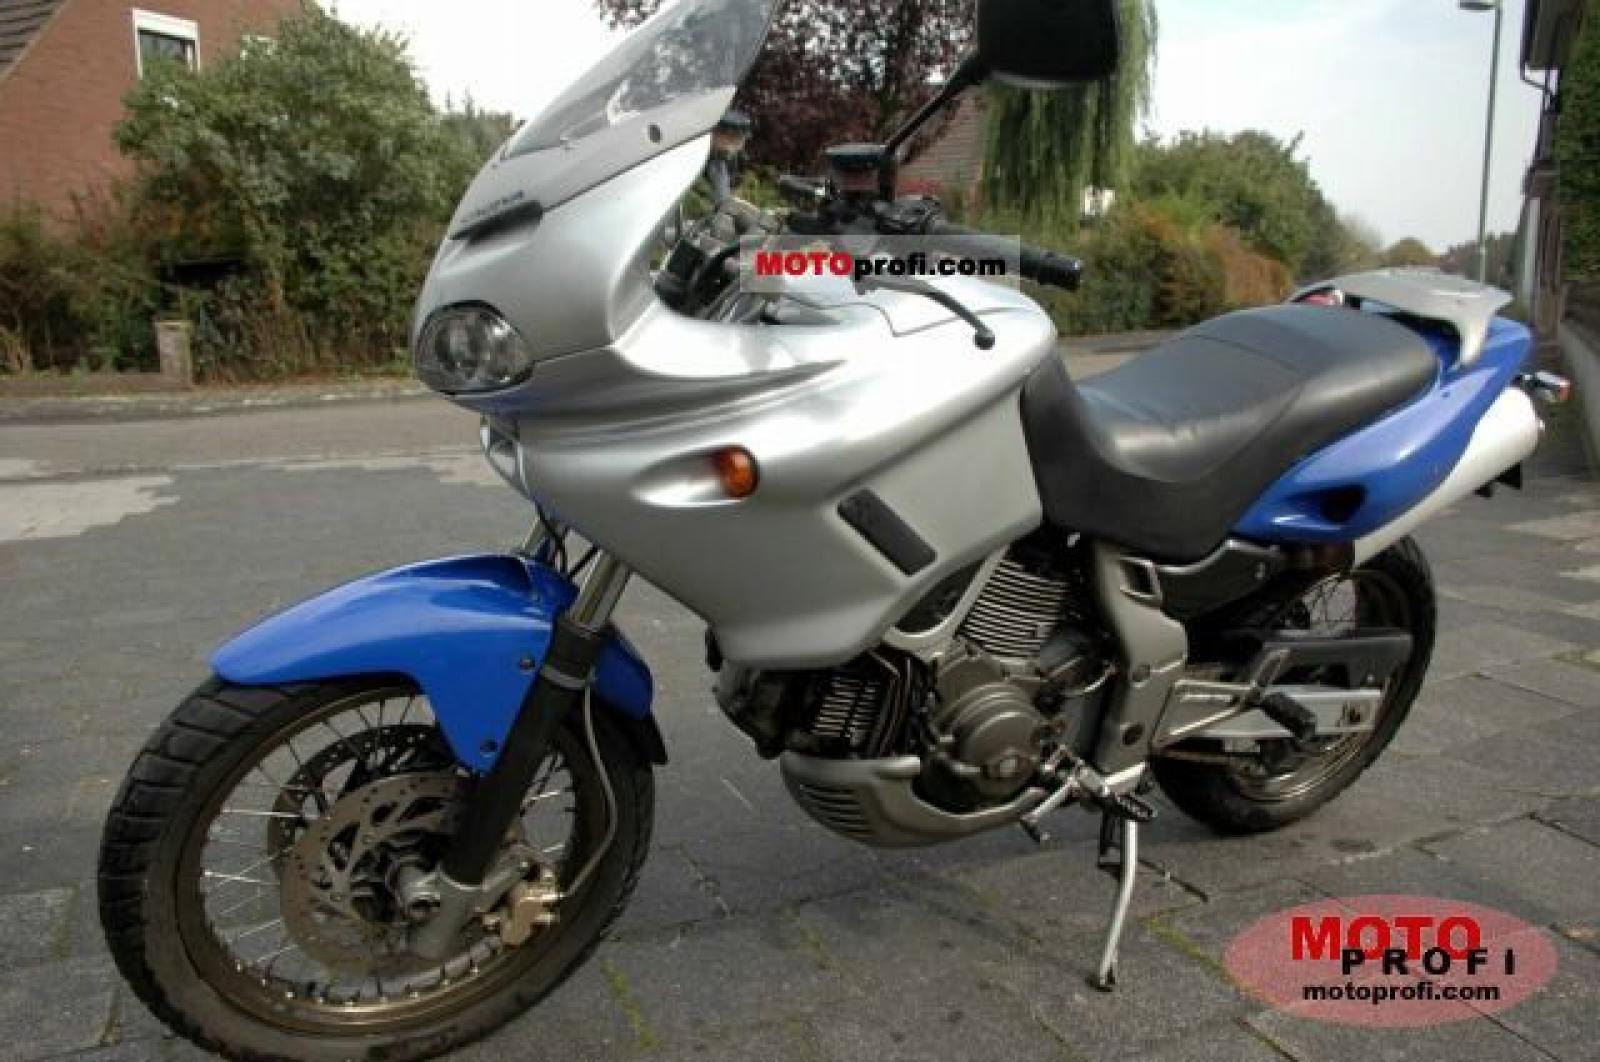 Cagiva Grand Canyon 900 IE 1999 images #67134